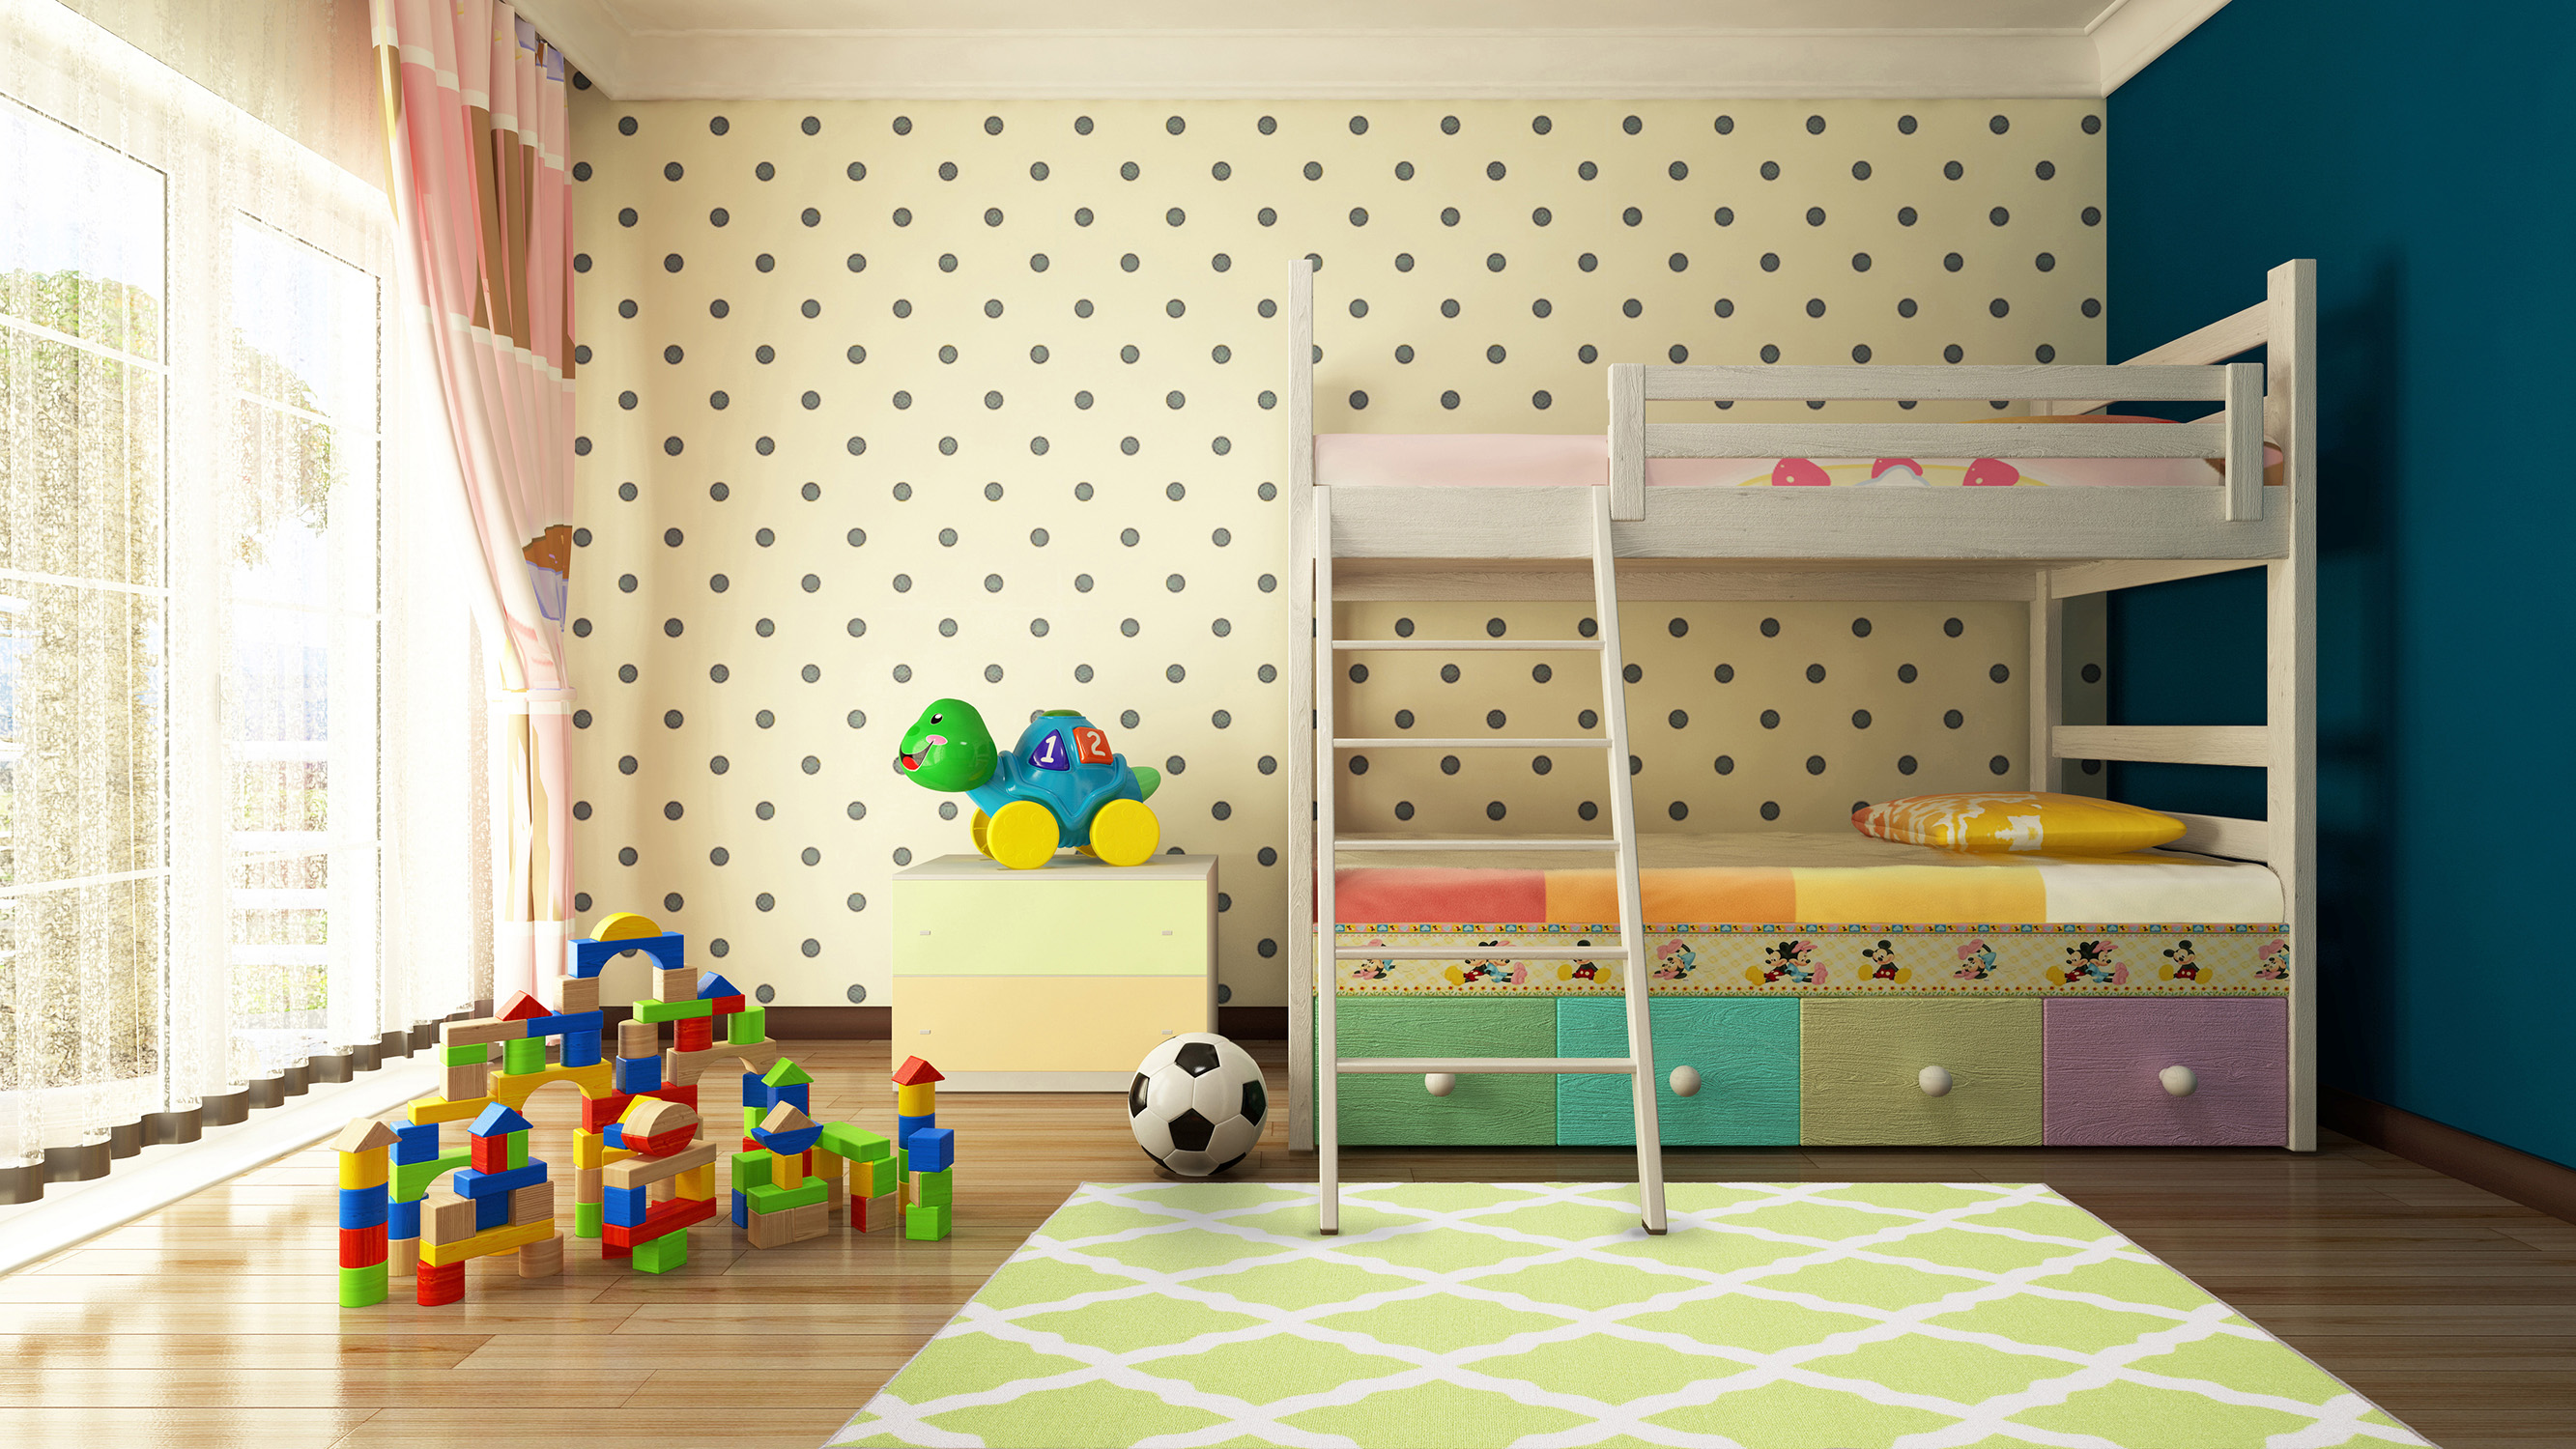 Rugs for kid's rooms - green rug rugs for kid's rooms Rugs for kid's rooms Rugs for kids rooms green rug